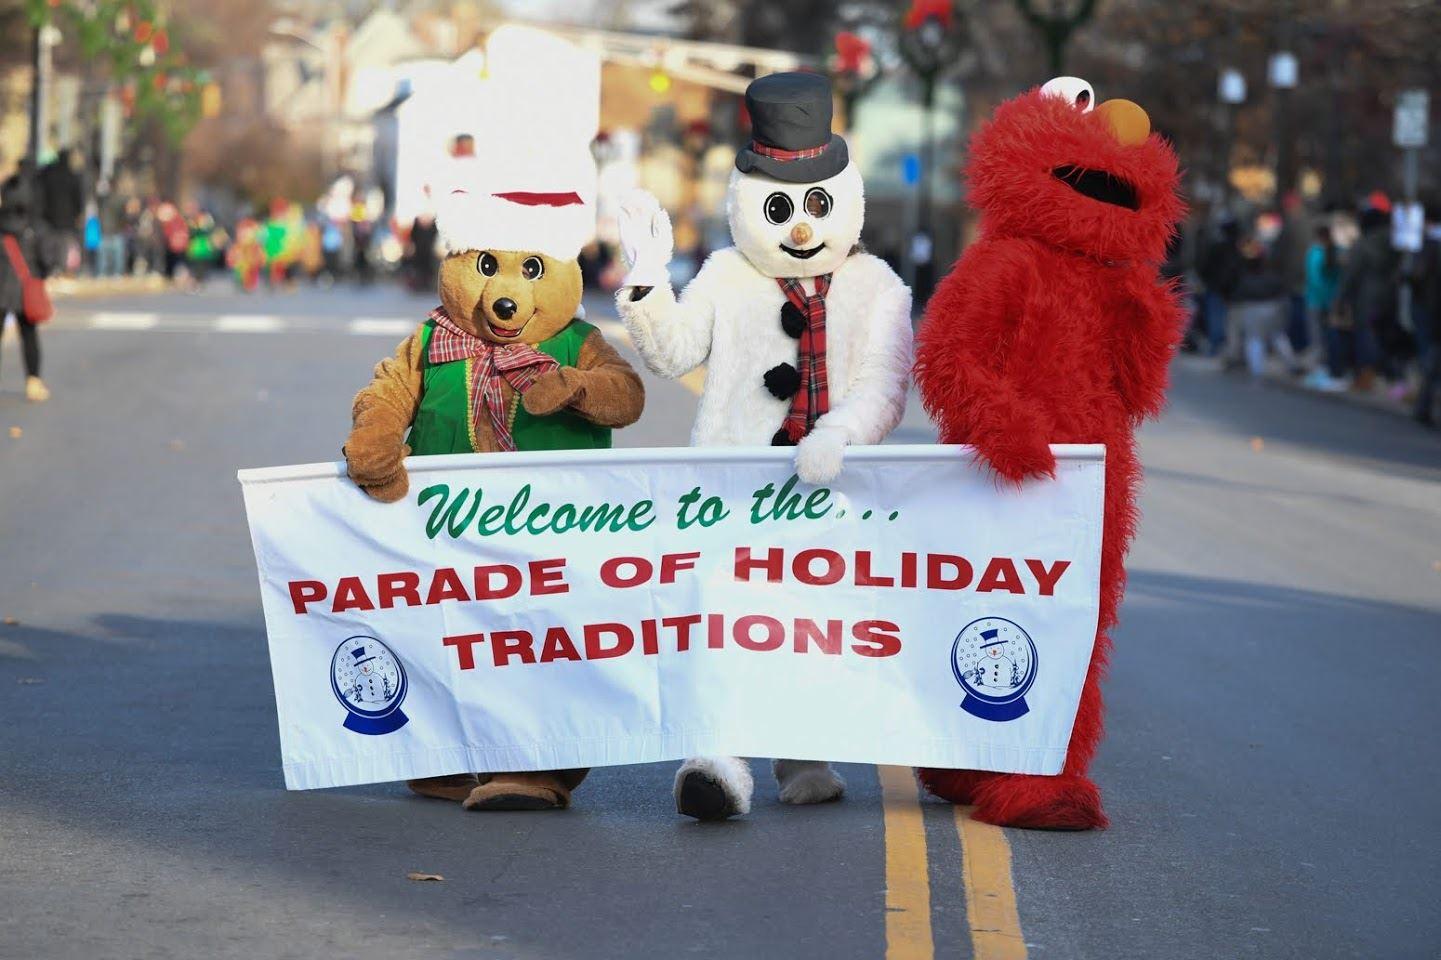 Malden Parade of Holiday Traditions